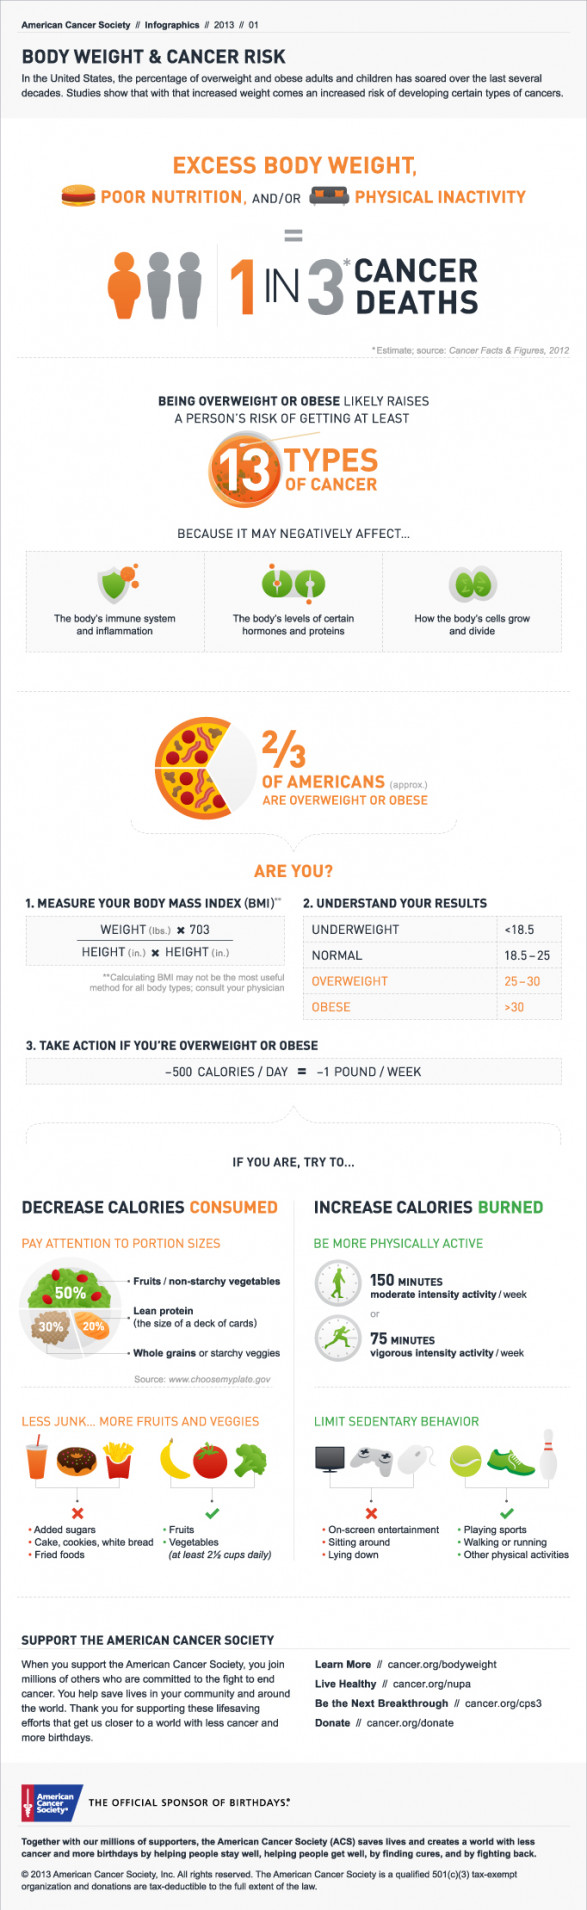 Body Weight & Cancer Risk